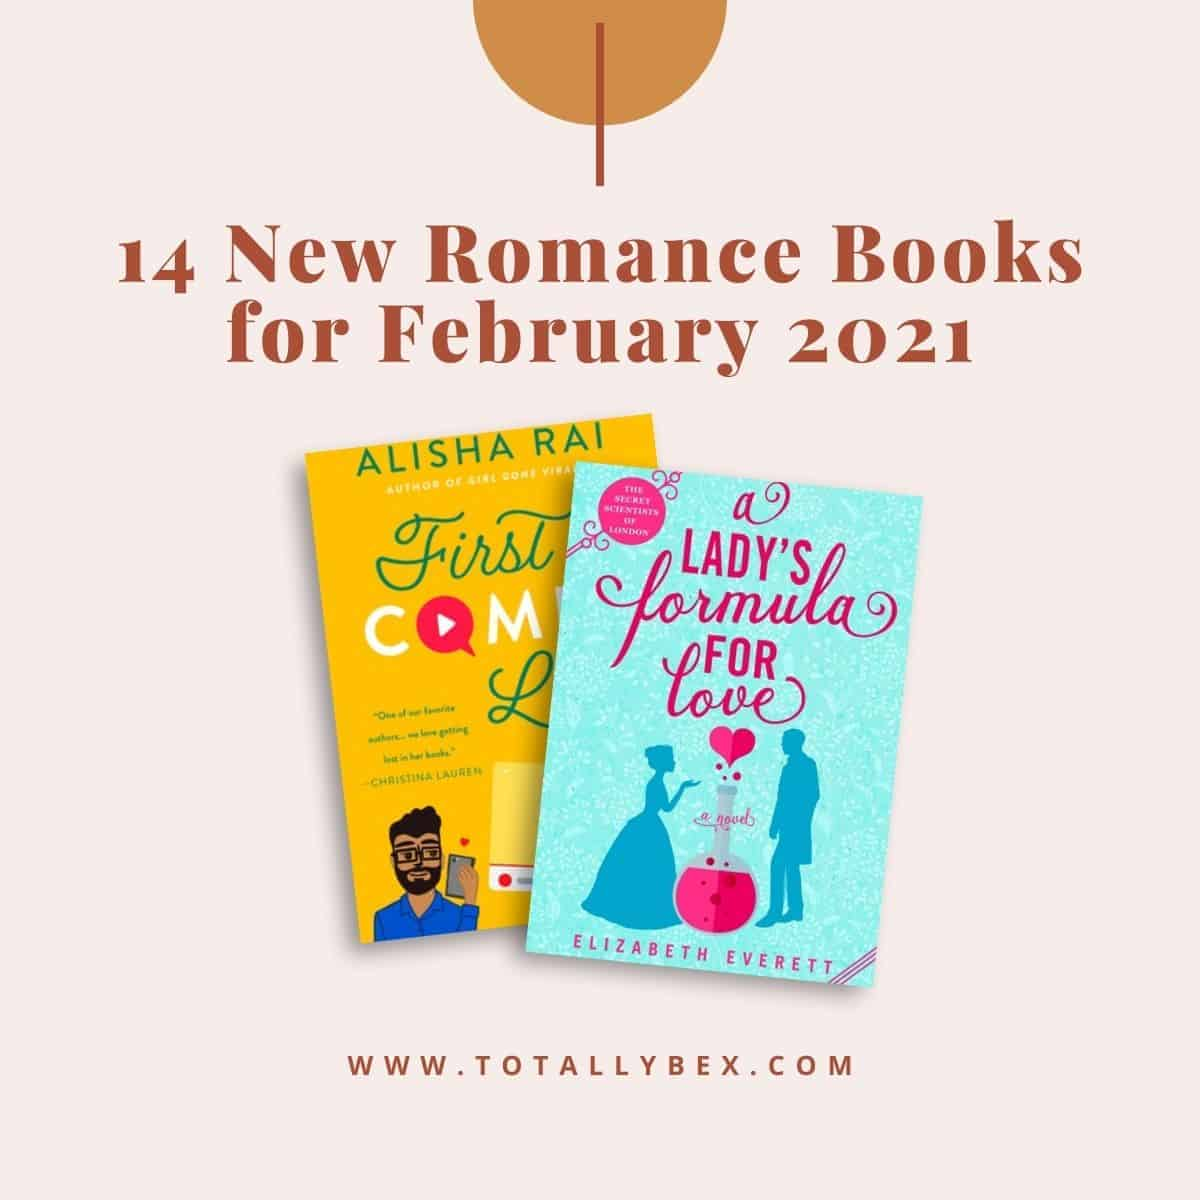 14 New Romance Books for February 2021 is a curated list of contemporary romance novels, historical romance novels, and slow burn romance books releasing in February 2021